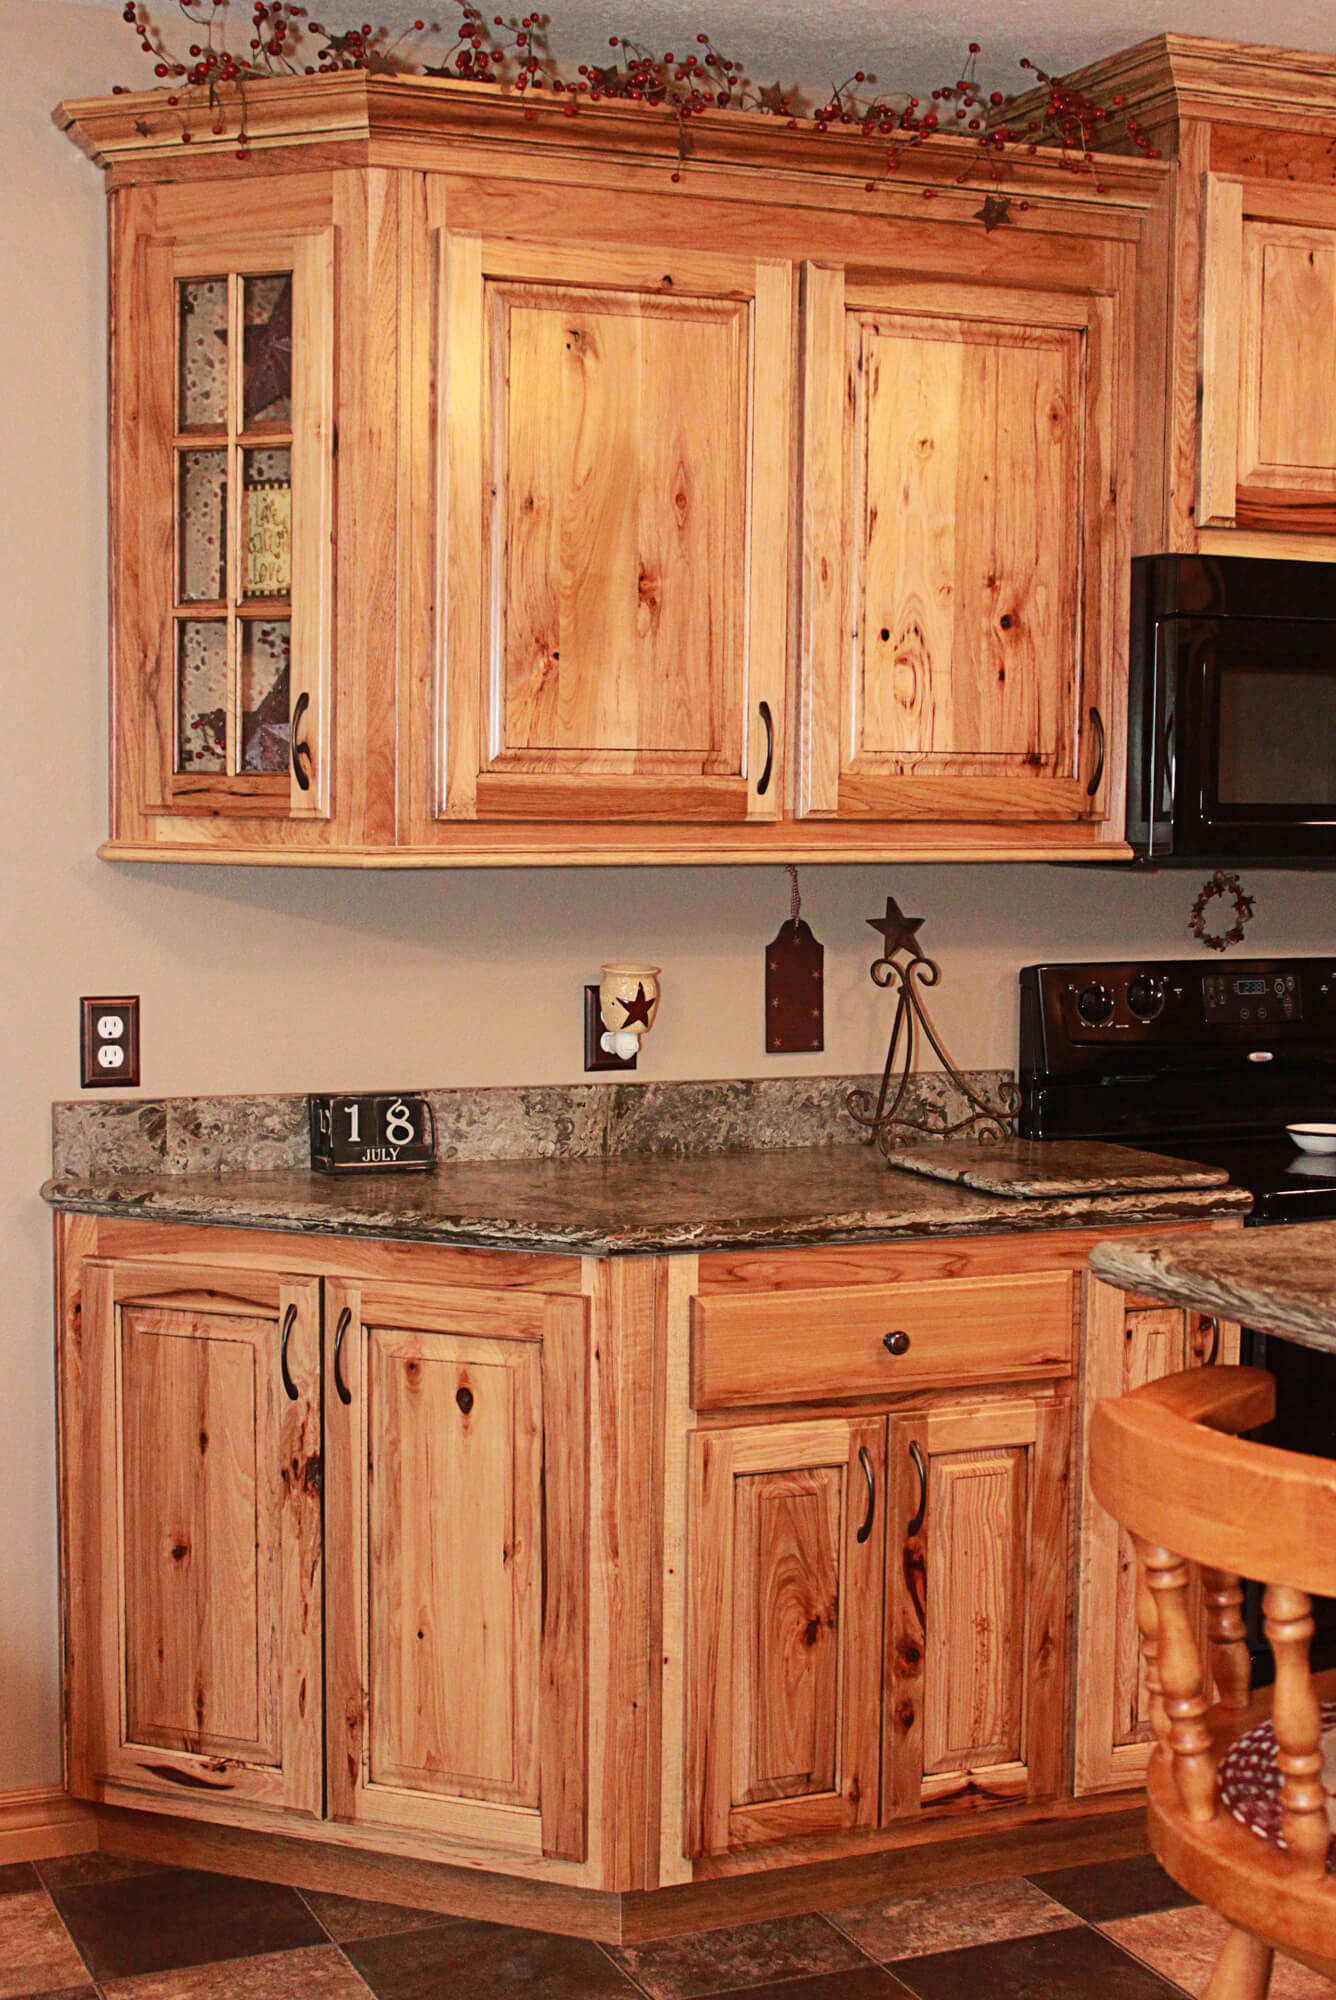 The cabinets plus rustic hickory kitchen cabinets for Hickory kitchen cabinets